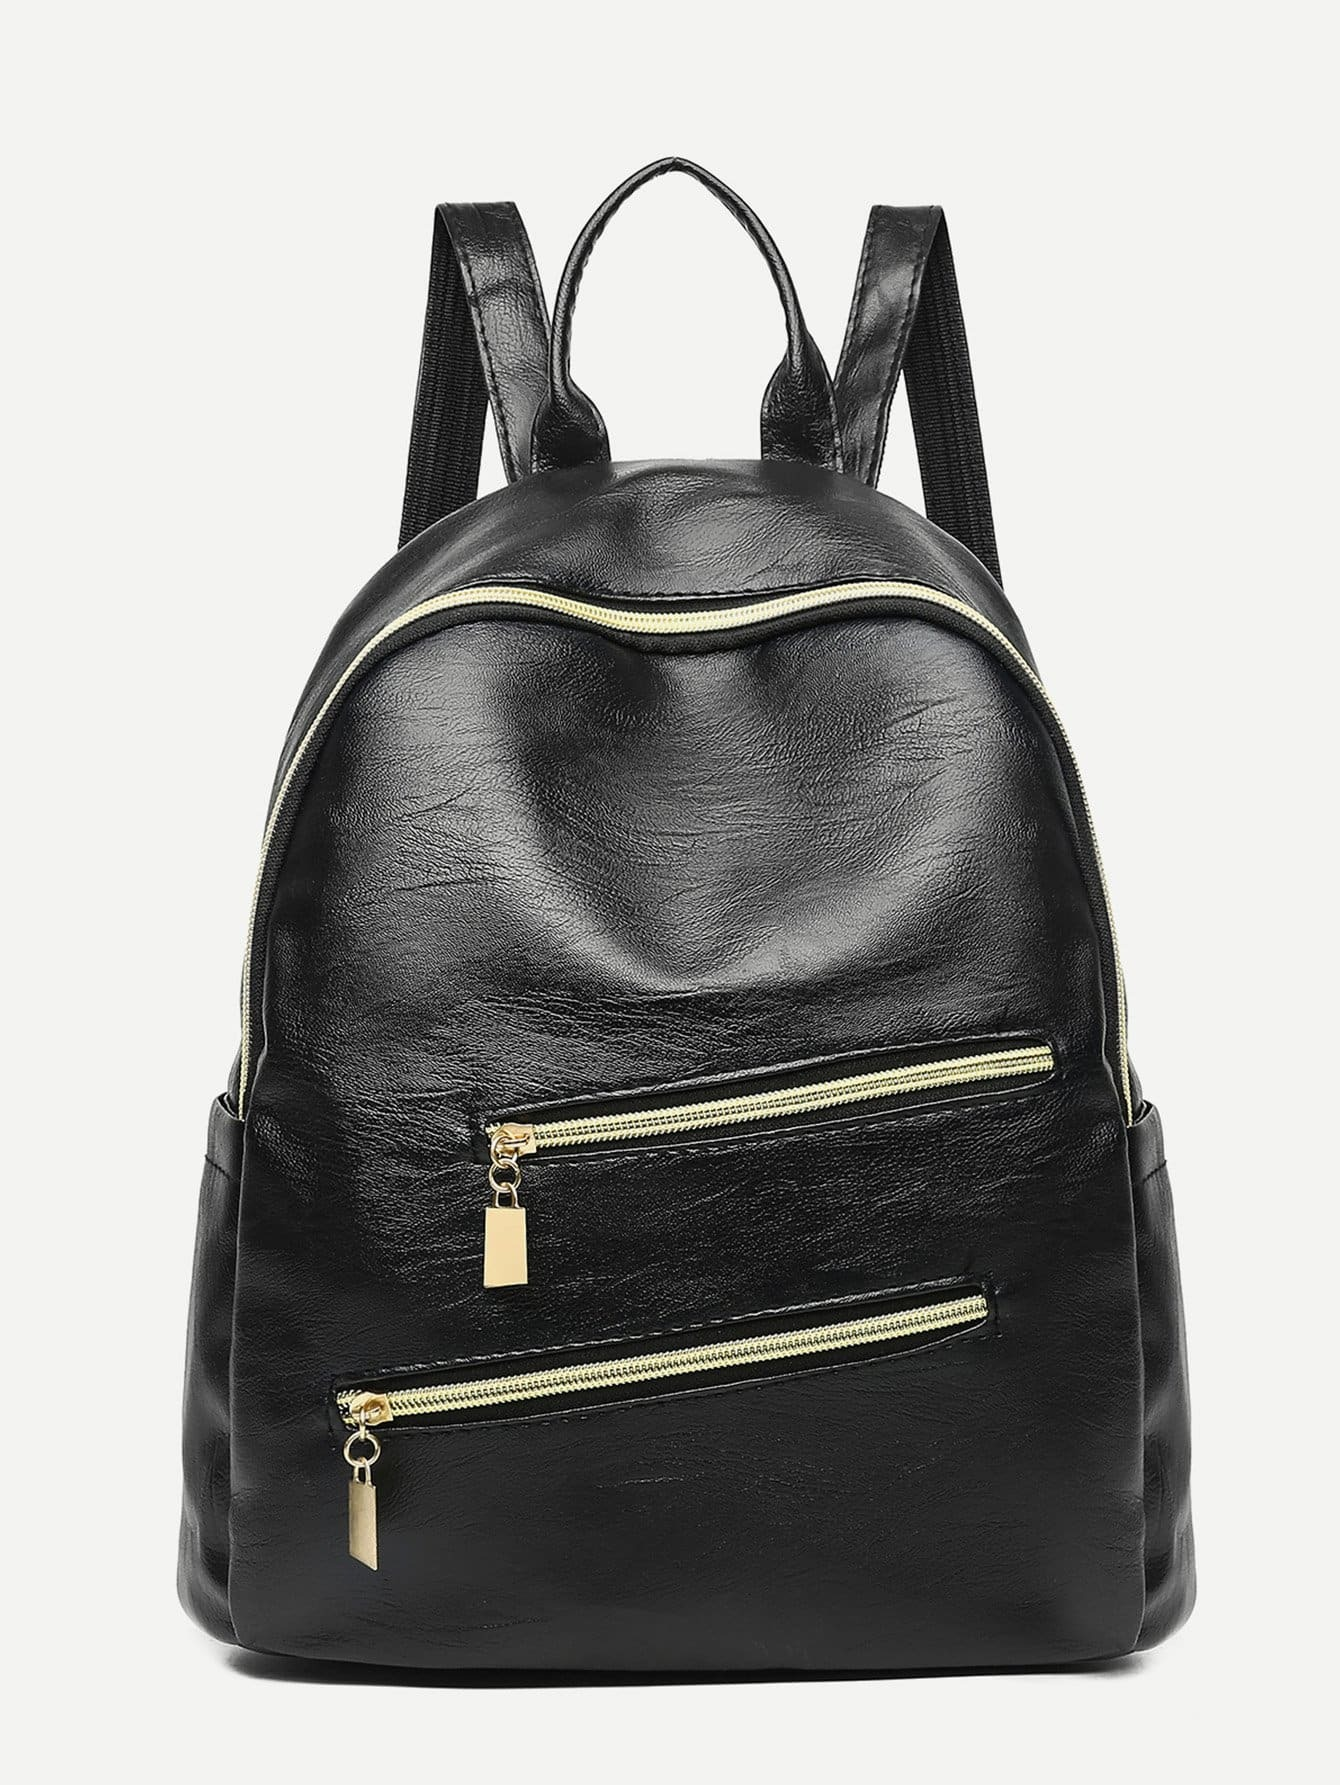 Double Zip Front Decor Backpack